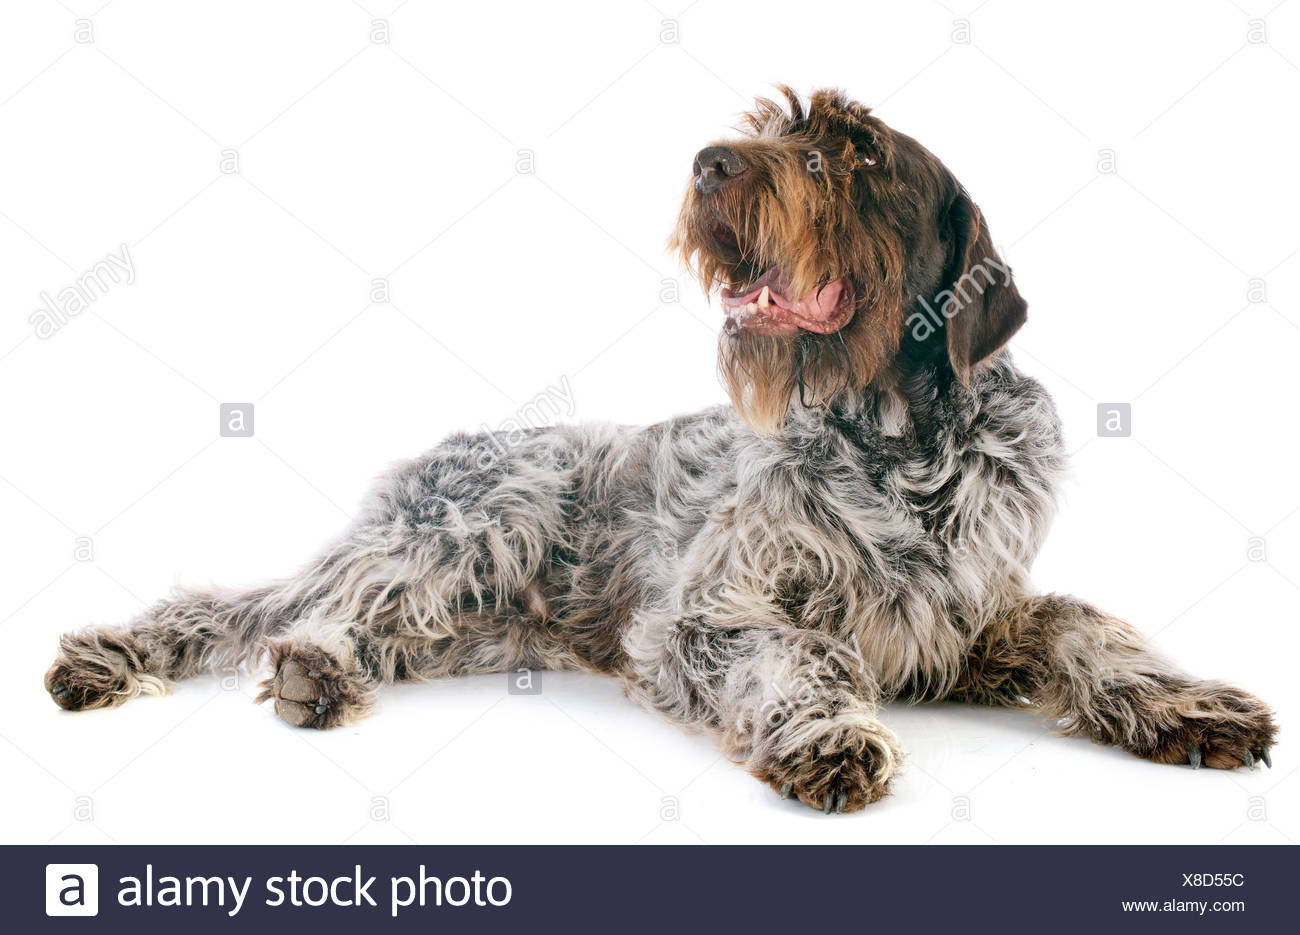 Wirehaired Griffon Stock Photos & Wirehaired Griffon Stock Images ...